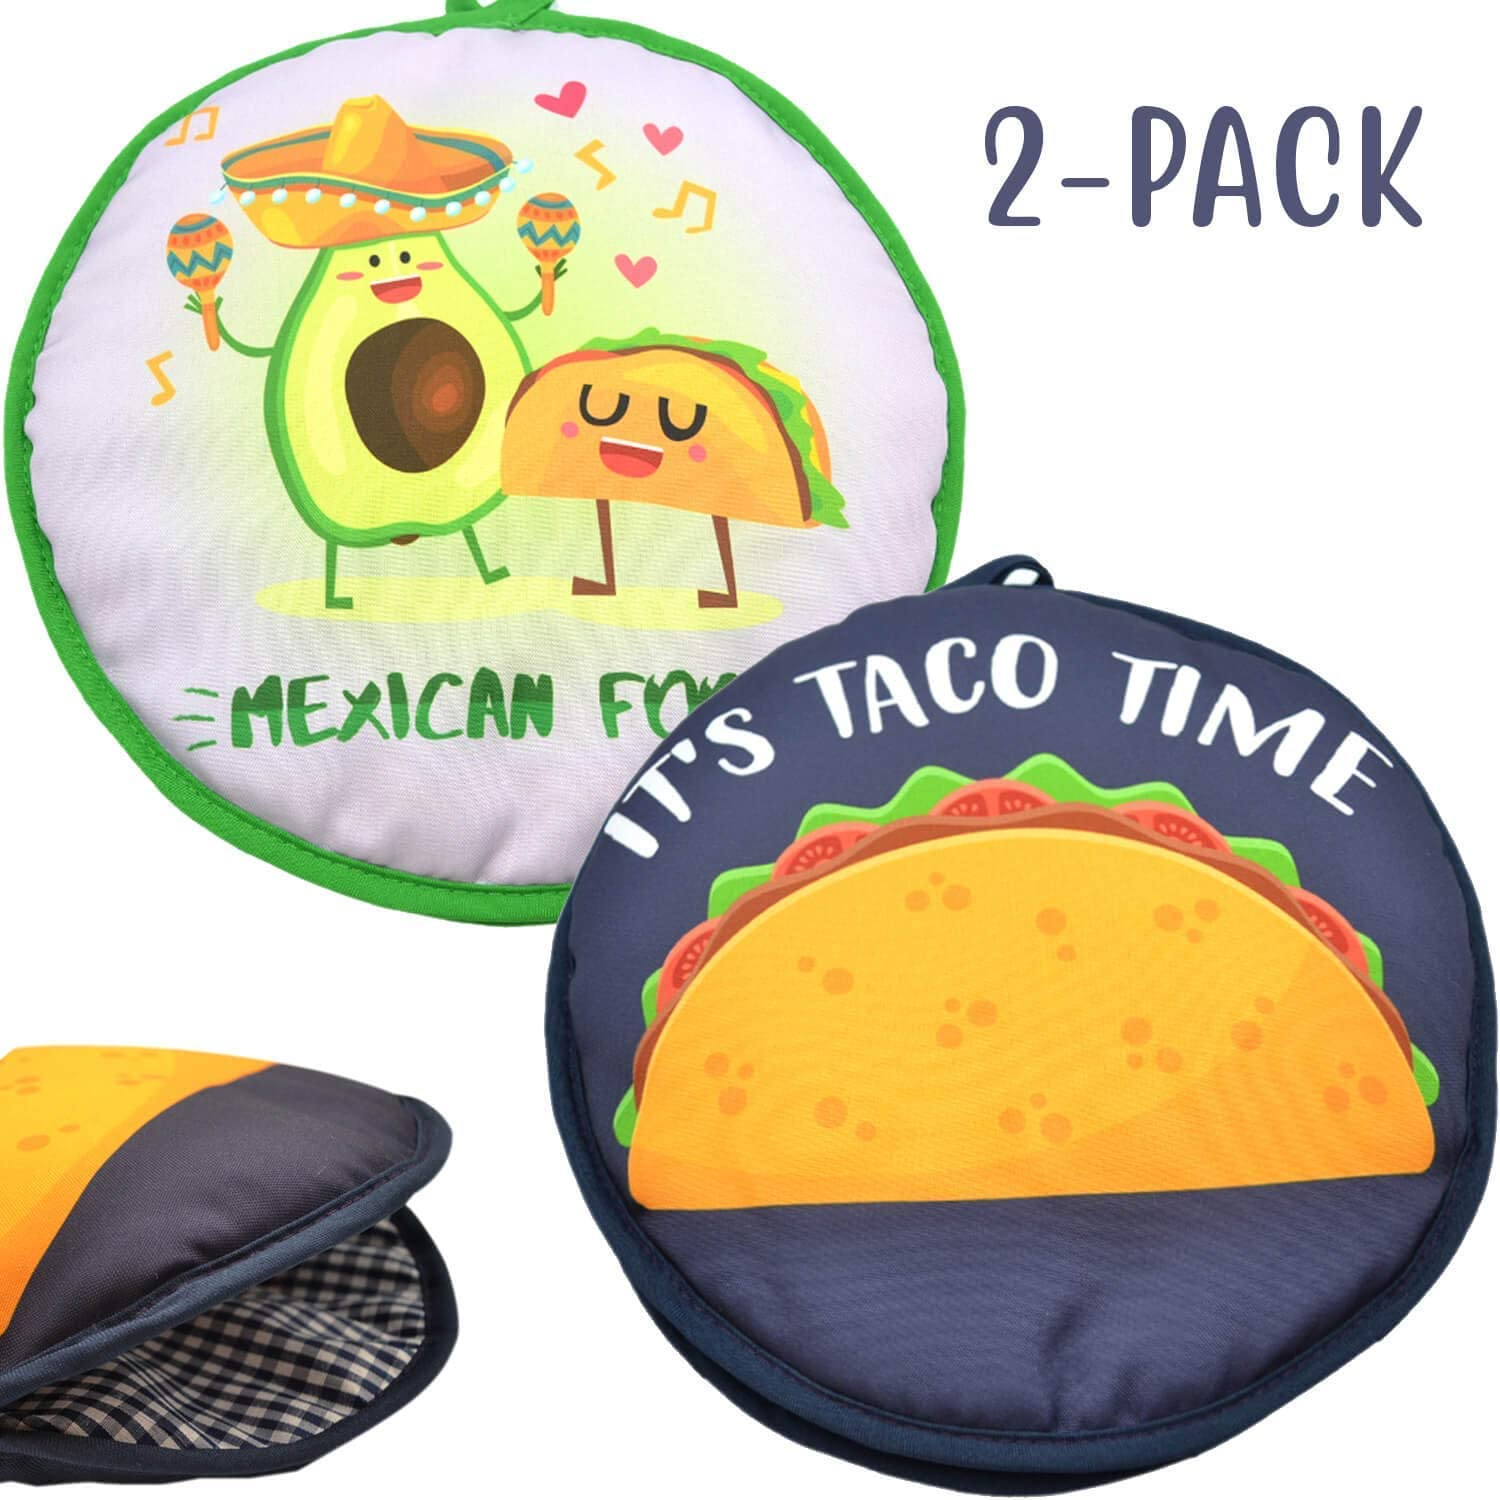 "Microwaveable X-Large Tortilla Warmer Pouch 2 Pack - 2 Fun Designs""Taco Time"" &""Mexican Food"" to make taco night special. 12 Inch in Diameter Microwave Corn or Flour Tortillas, Pizza, Naan Bread"